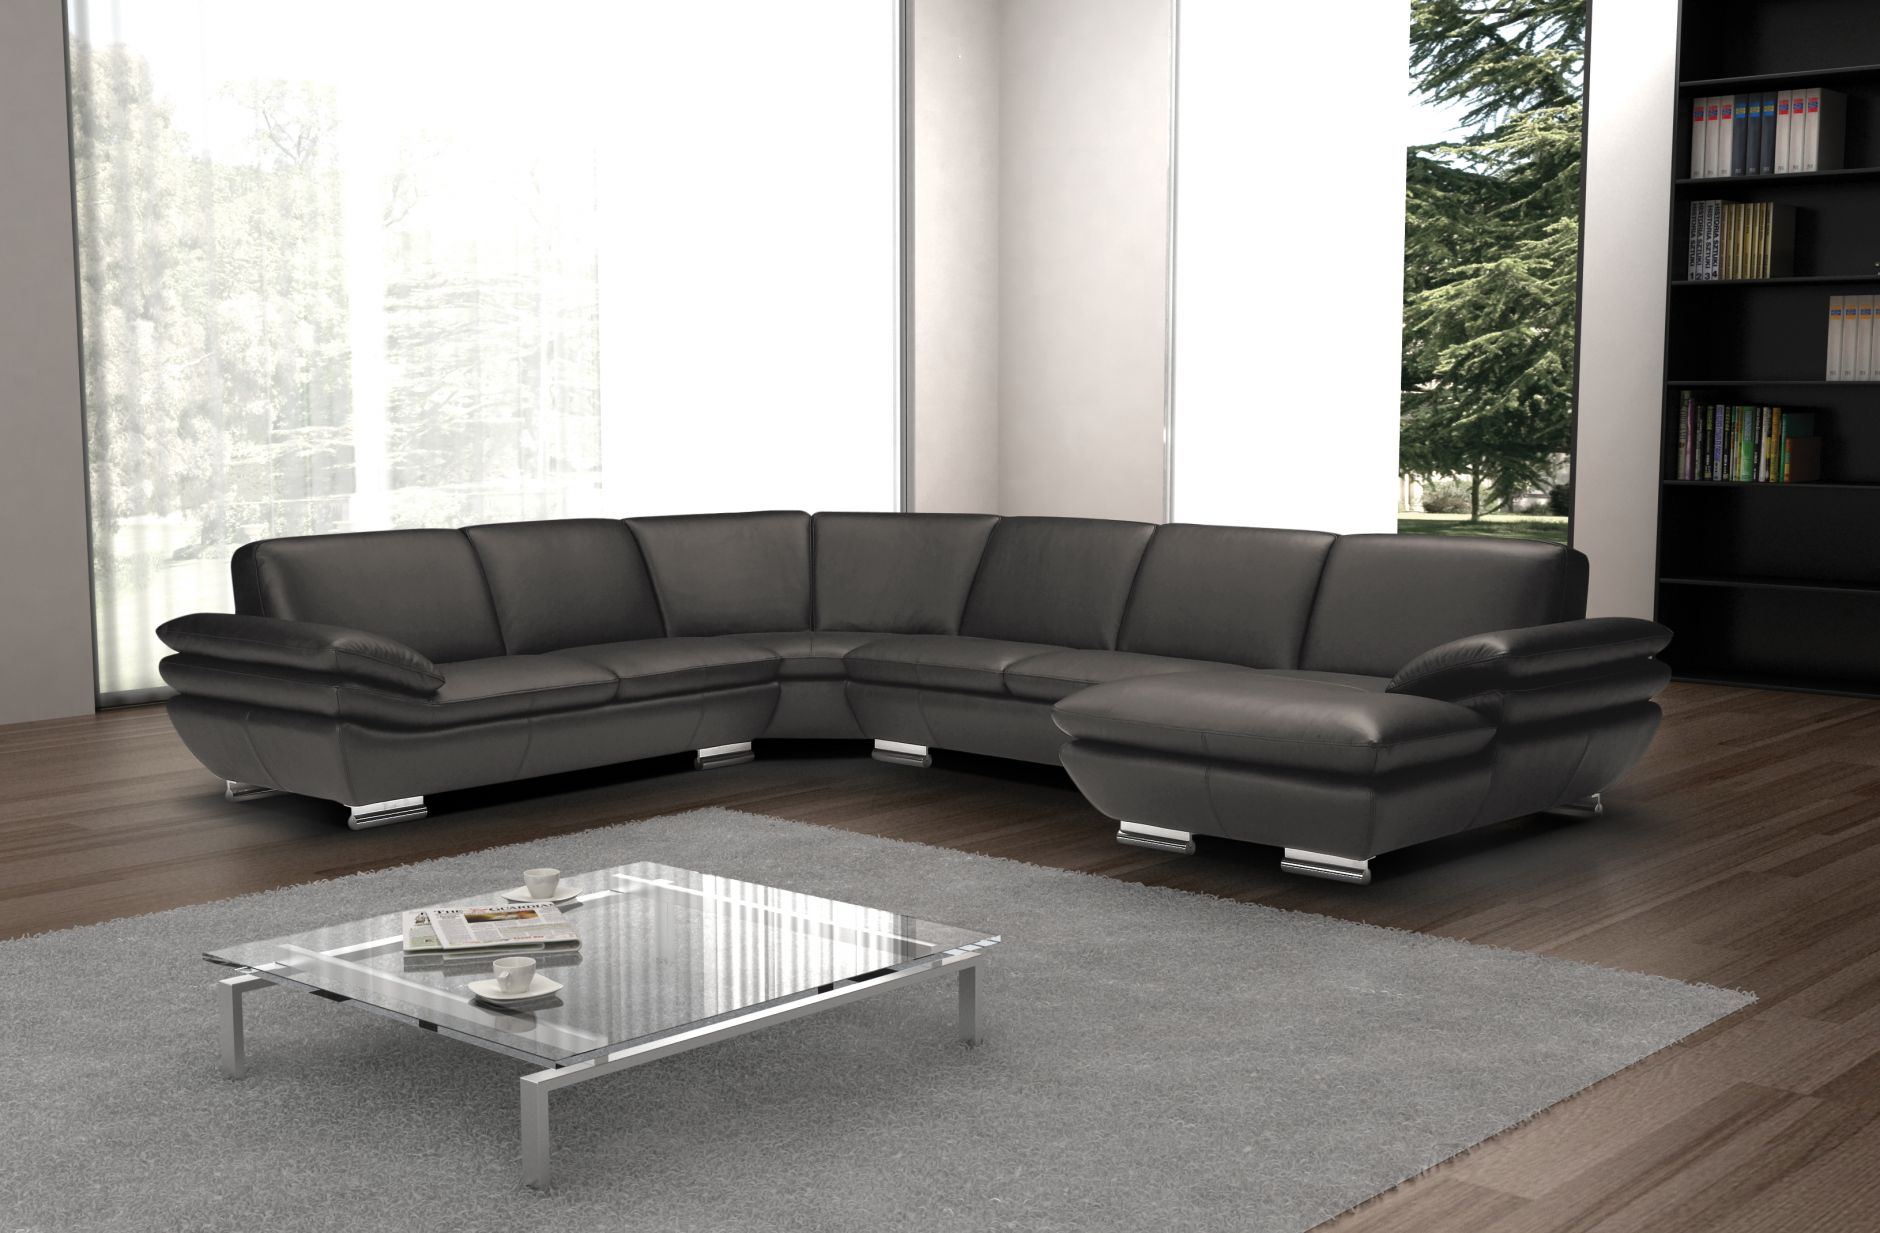 sectional sofas sectional sofa calia italia mood 391 seriesfurniture from italy. Black Bedroom Furniture Sets. Home Design Ideas